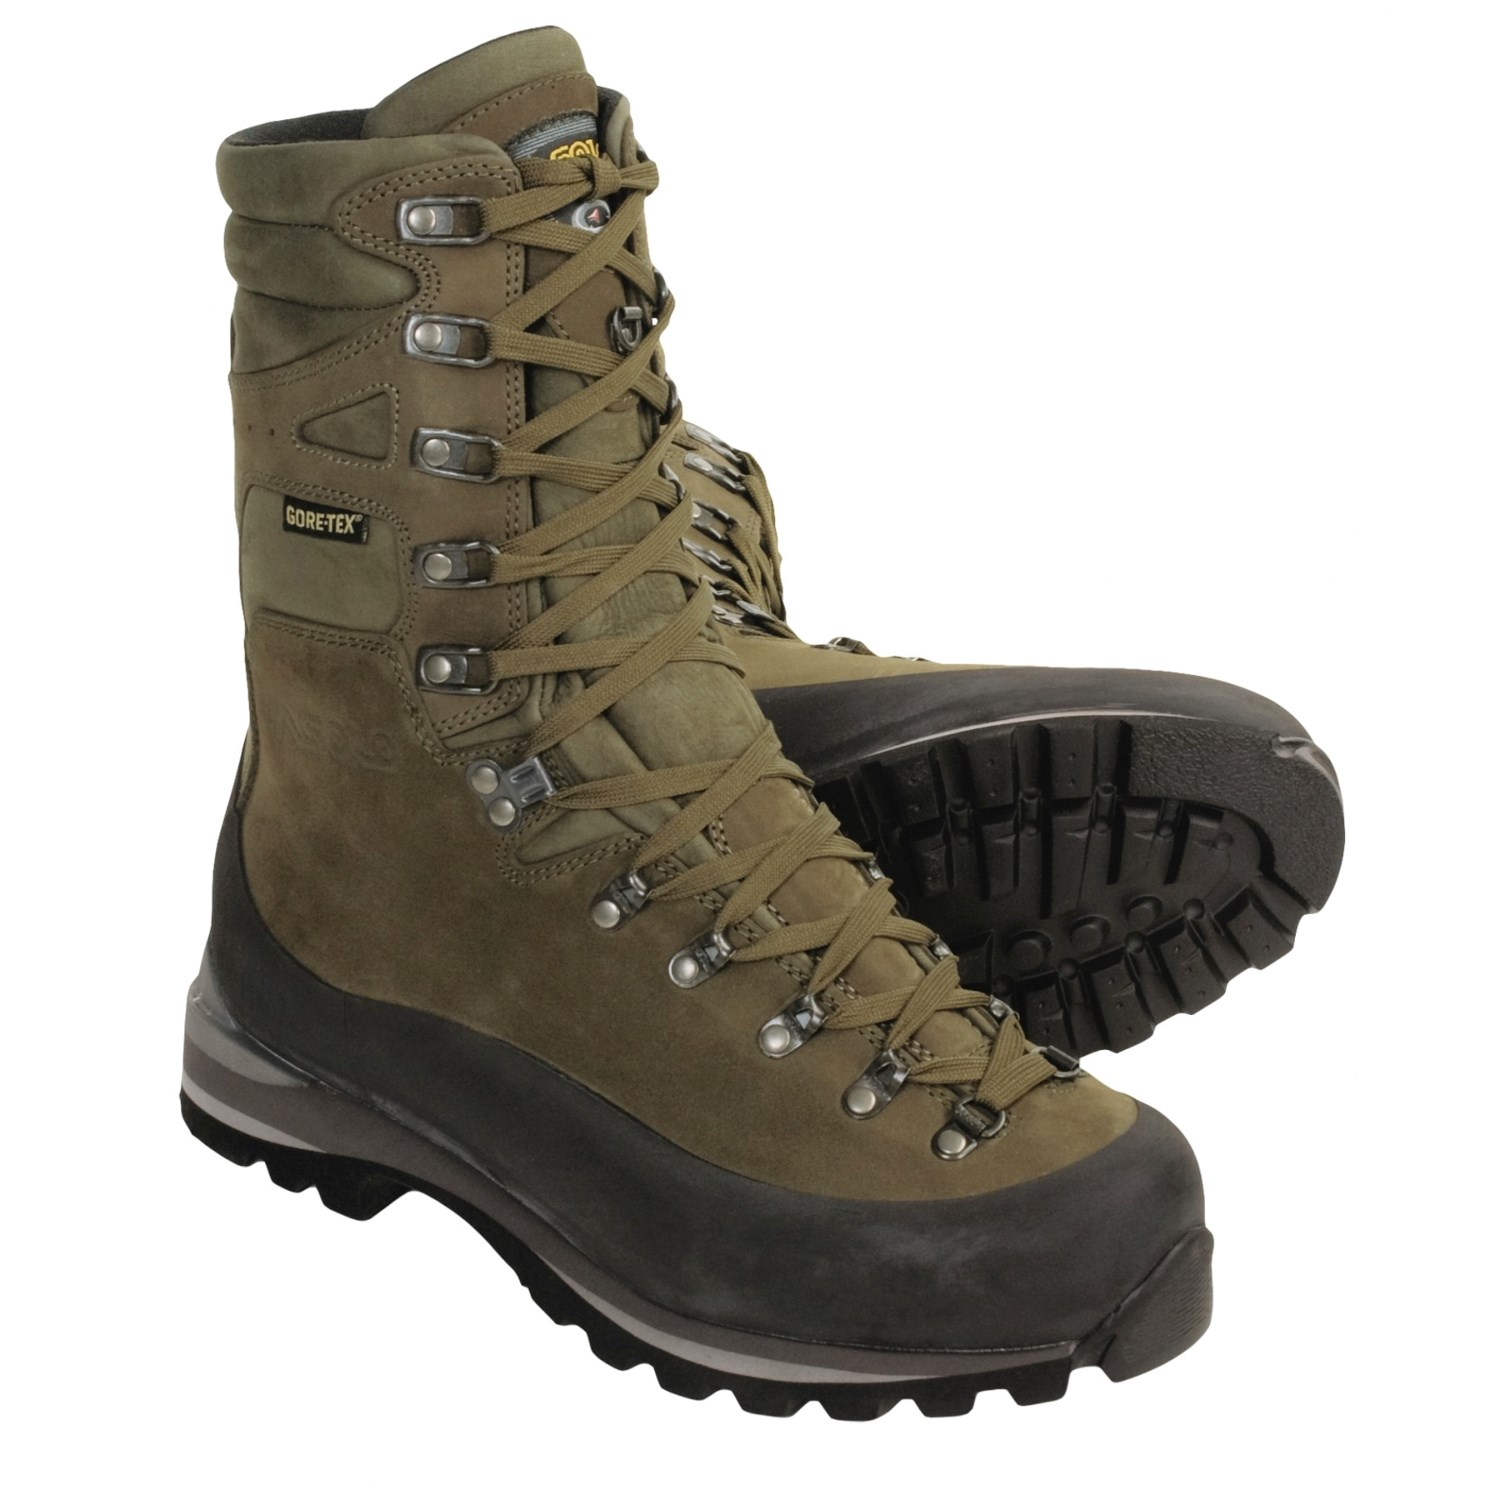 Asolo Tps Gore Tex 174 Military Boots For Men And Women